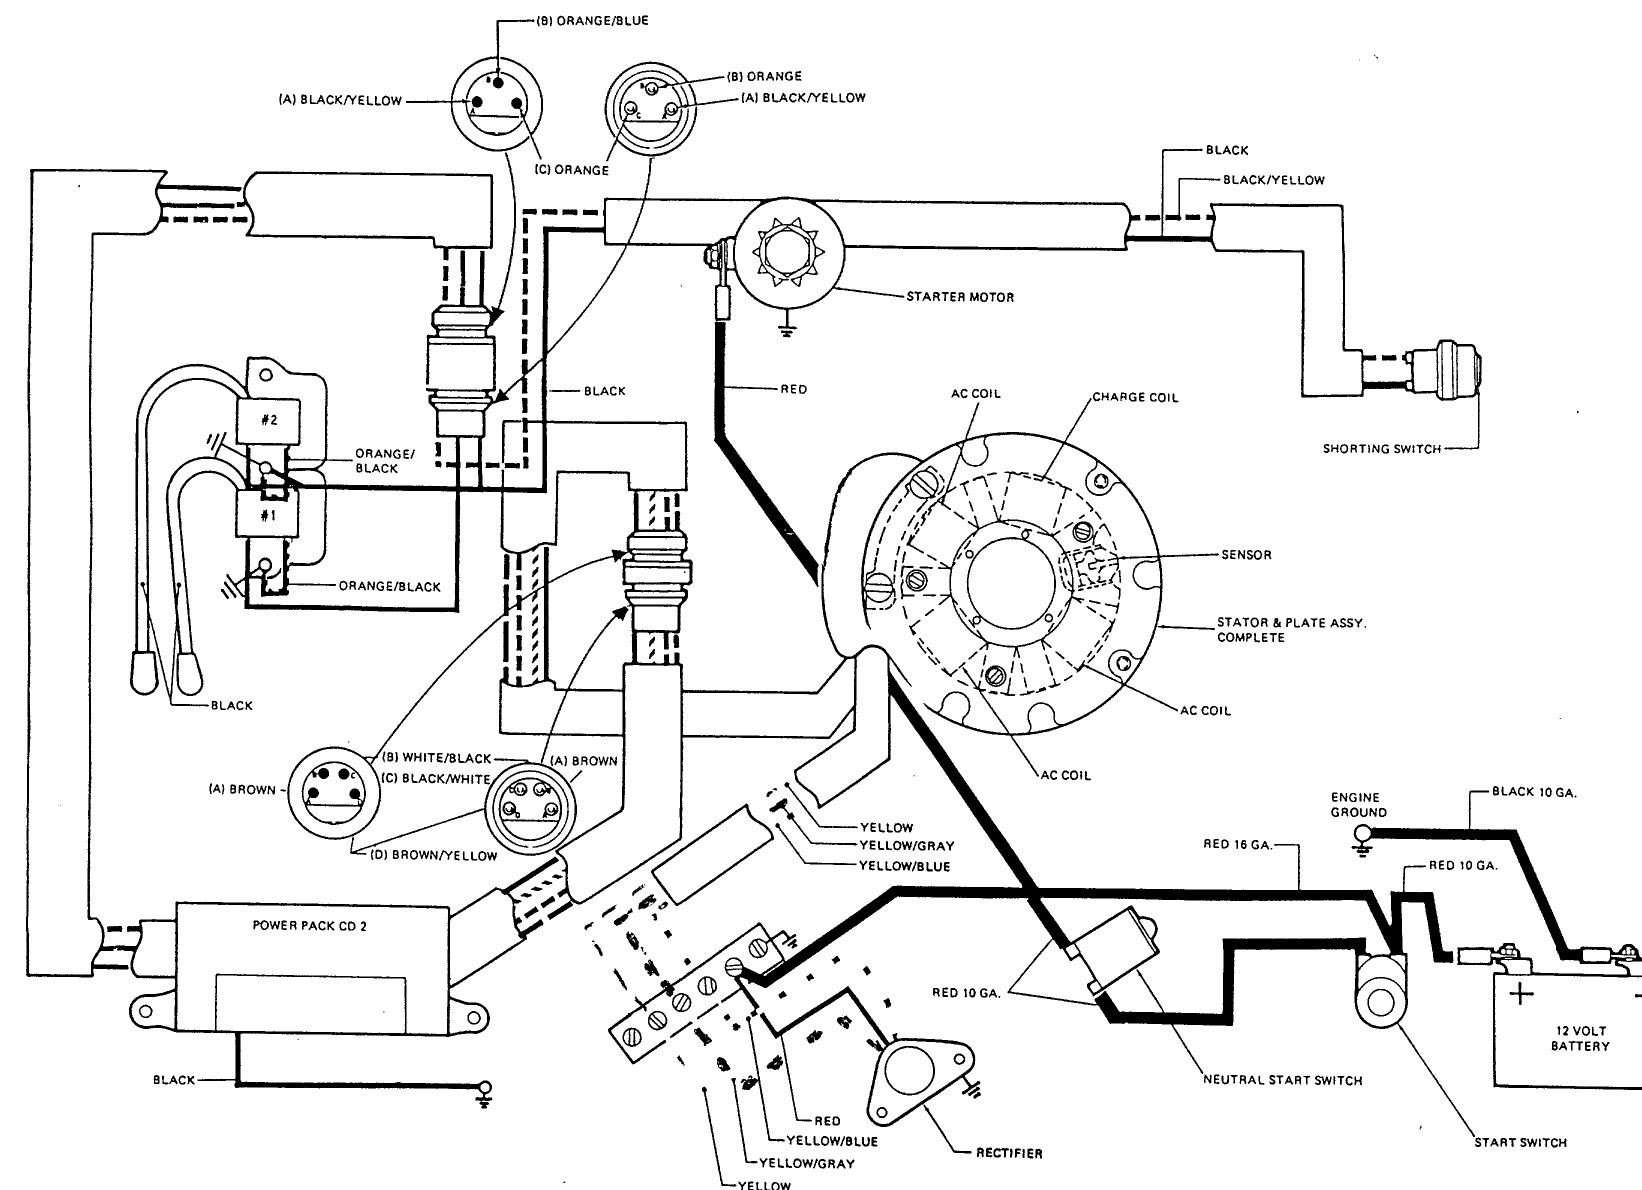 Maintaining Johnson 9.9 Troubleshooting - Yamaha Outboard Ignition Switch Wiring Diagram